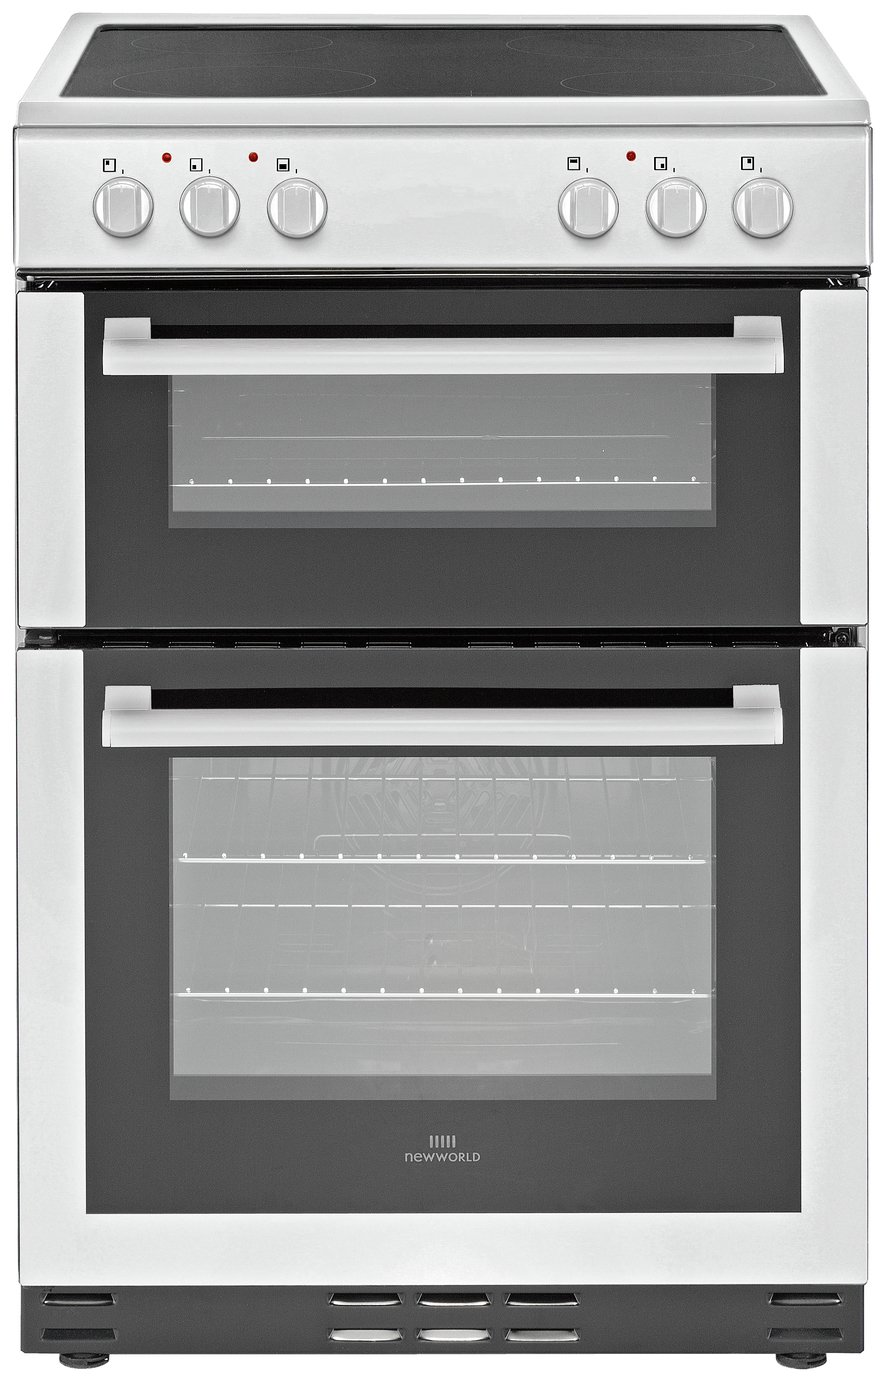 New World - 60EDOC Electric Cooker - White + Installation